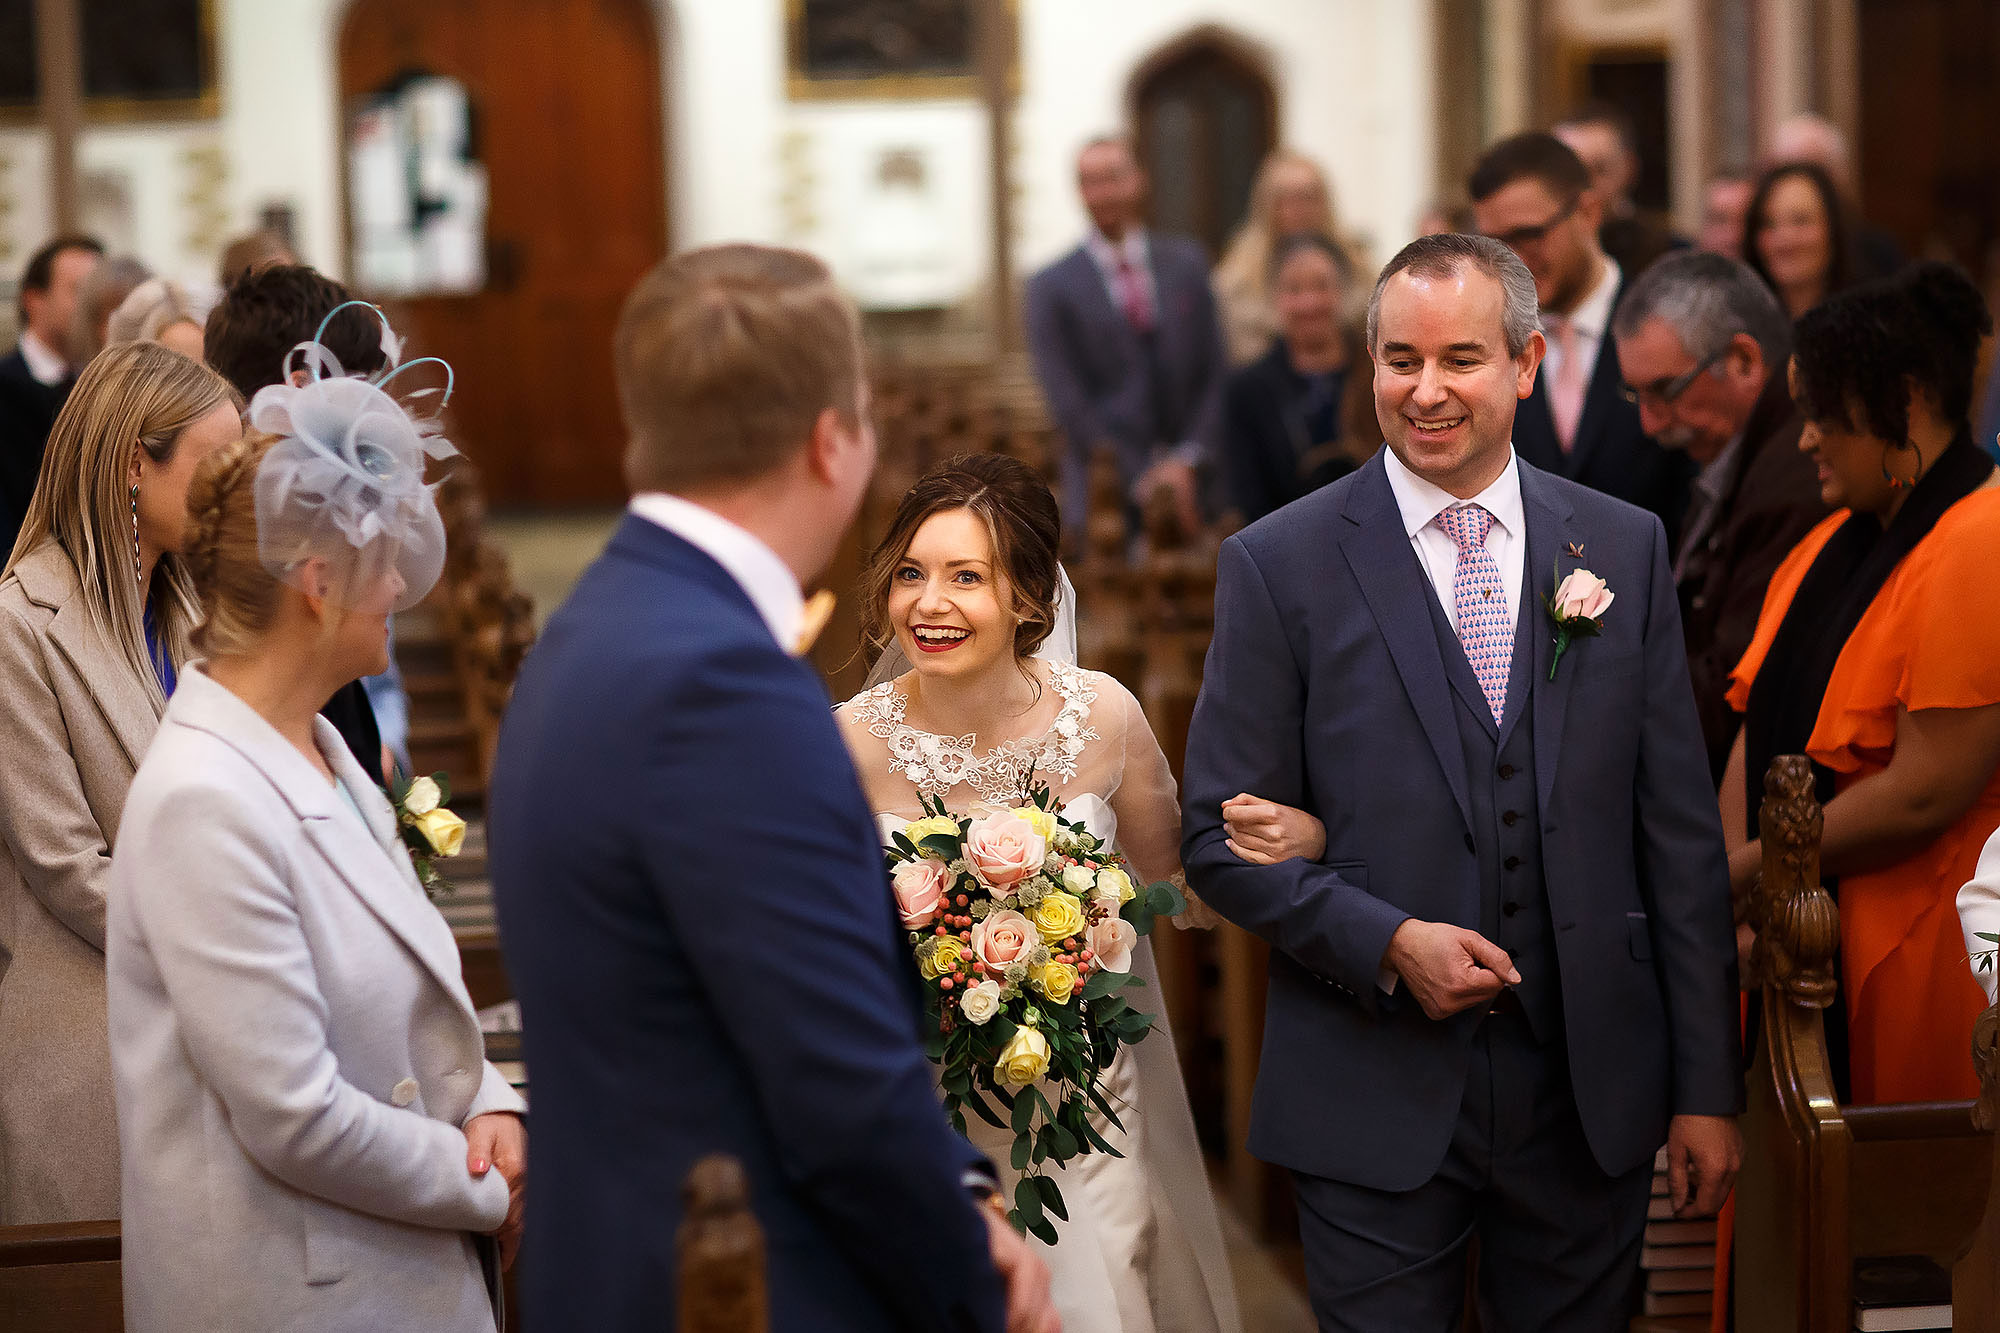 Bride looking excited as she locks eyes with the groom at the top of the wedding aisle | Mitton Hall wedding photographs by Toni Darcy Photography